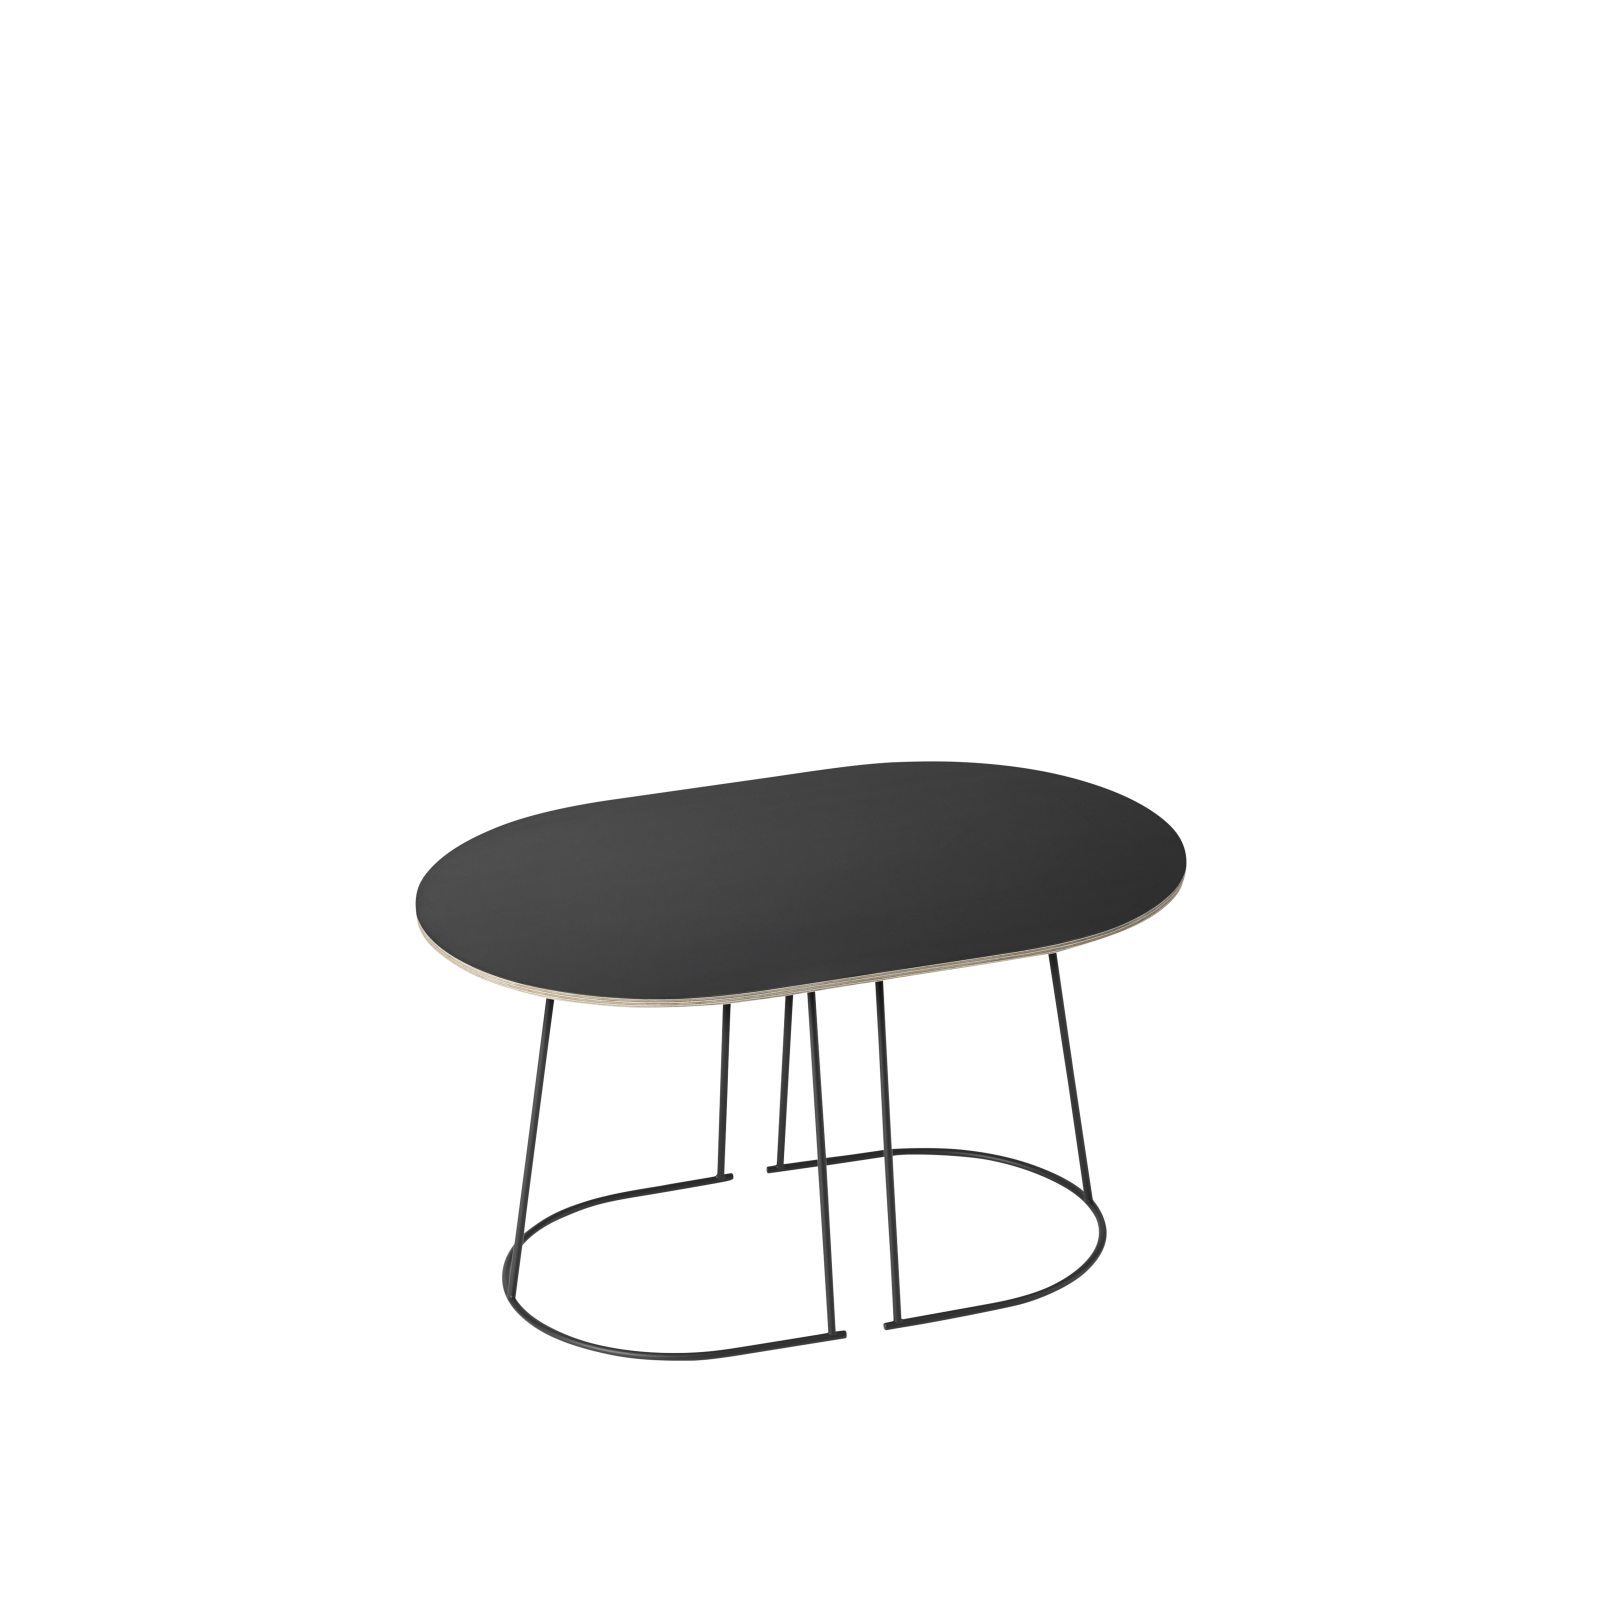 Airy Coffee Table Small, Black